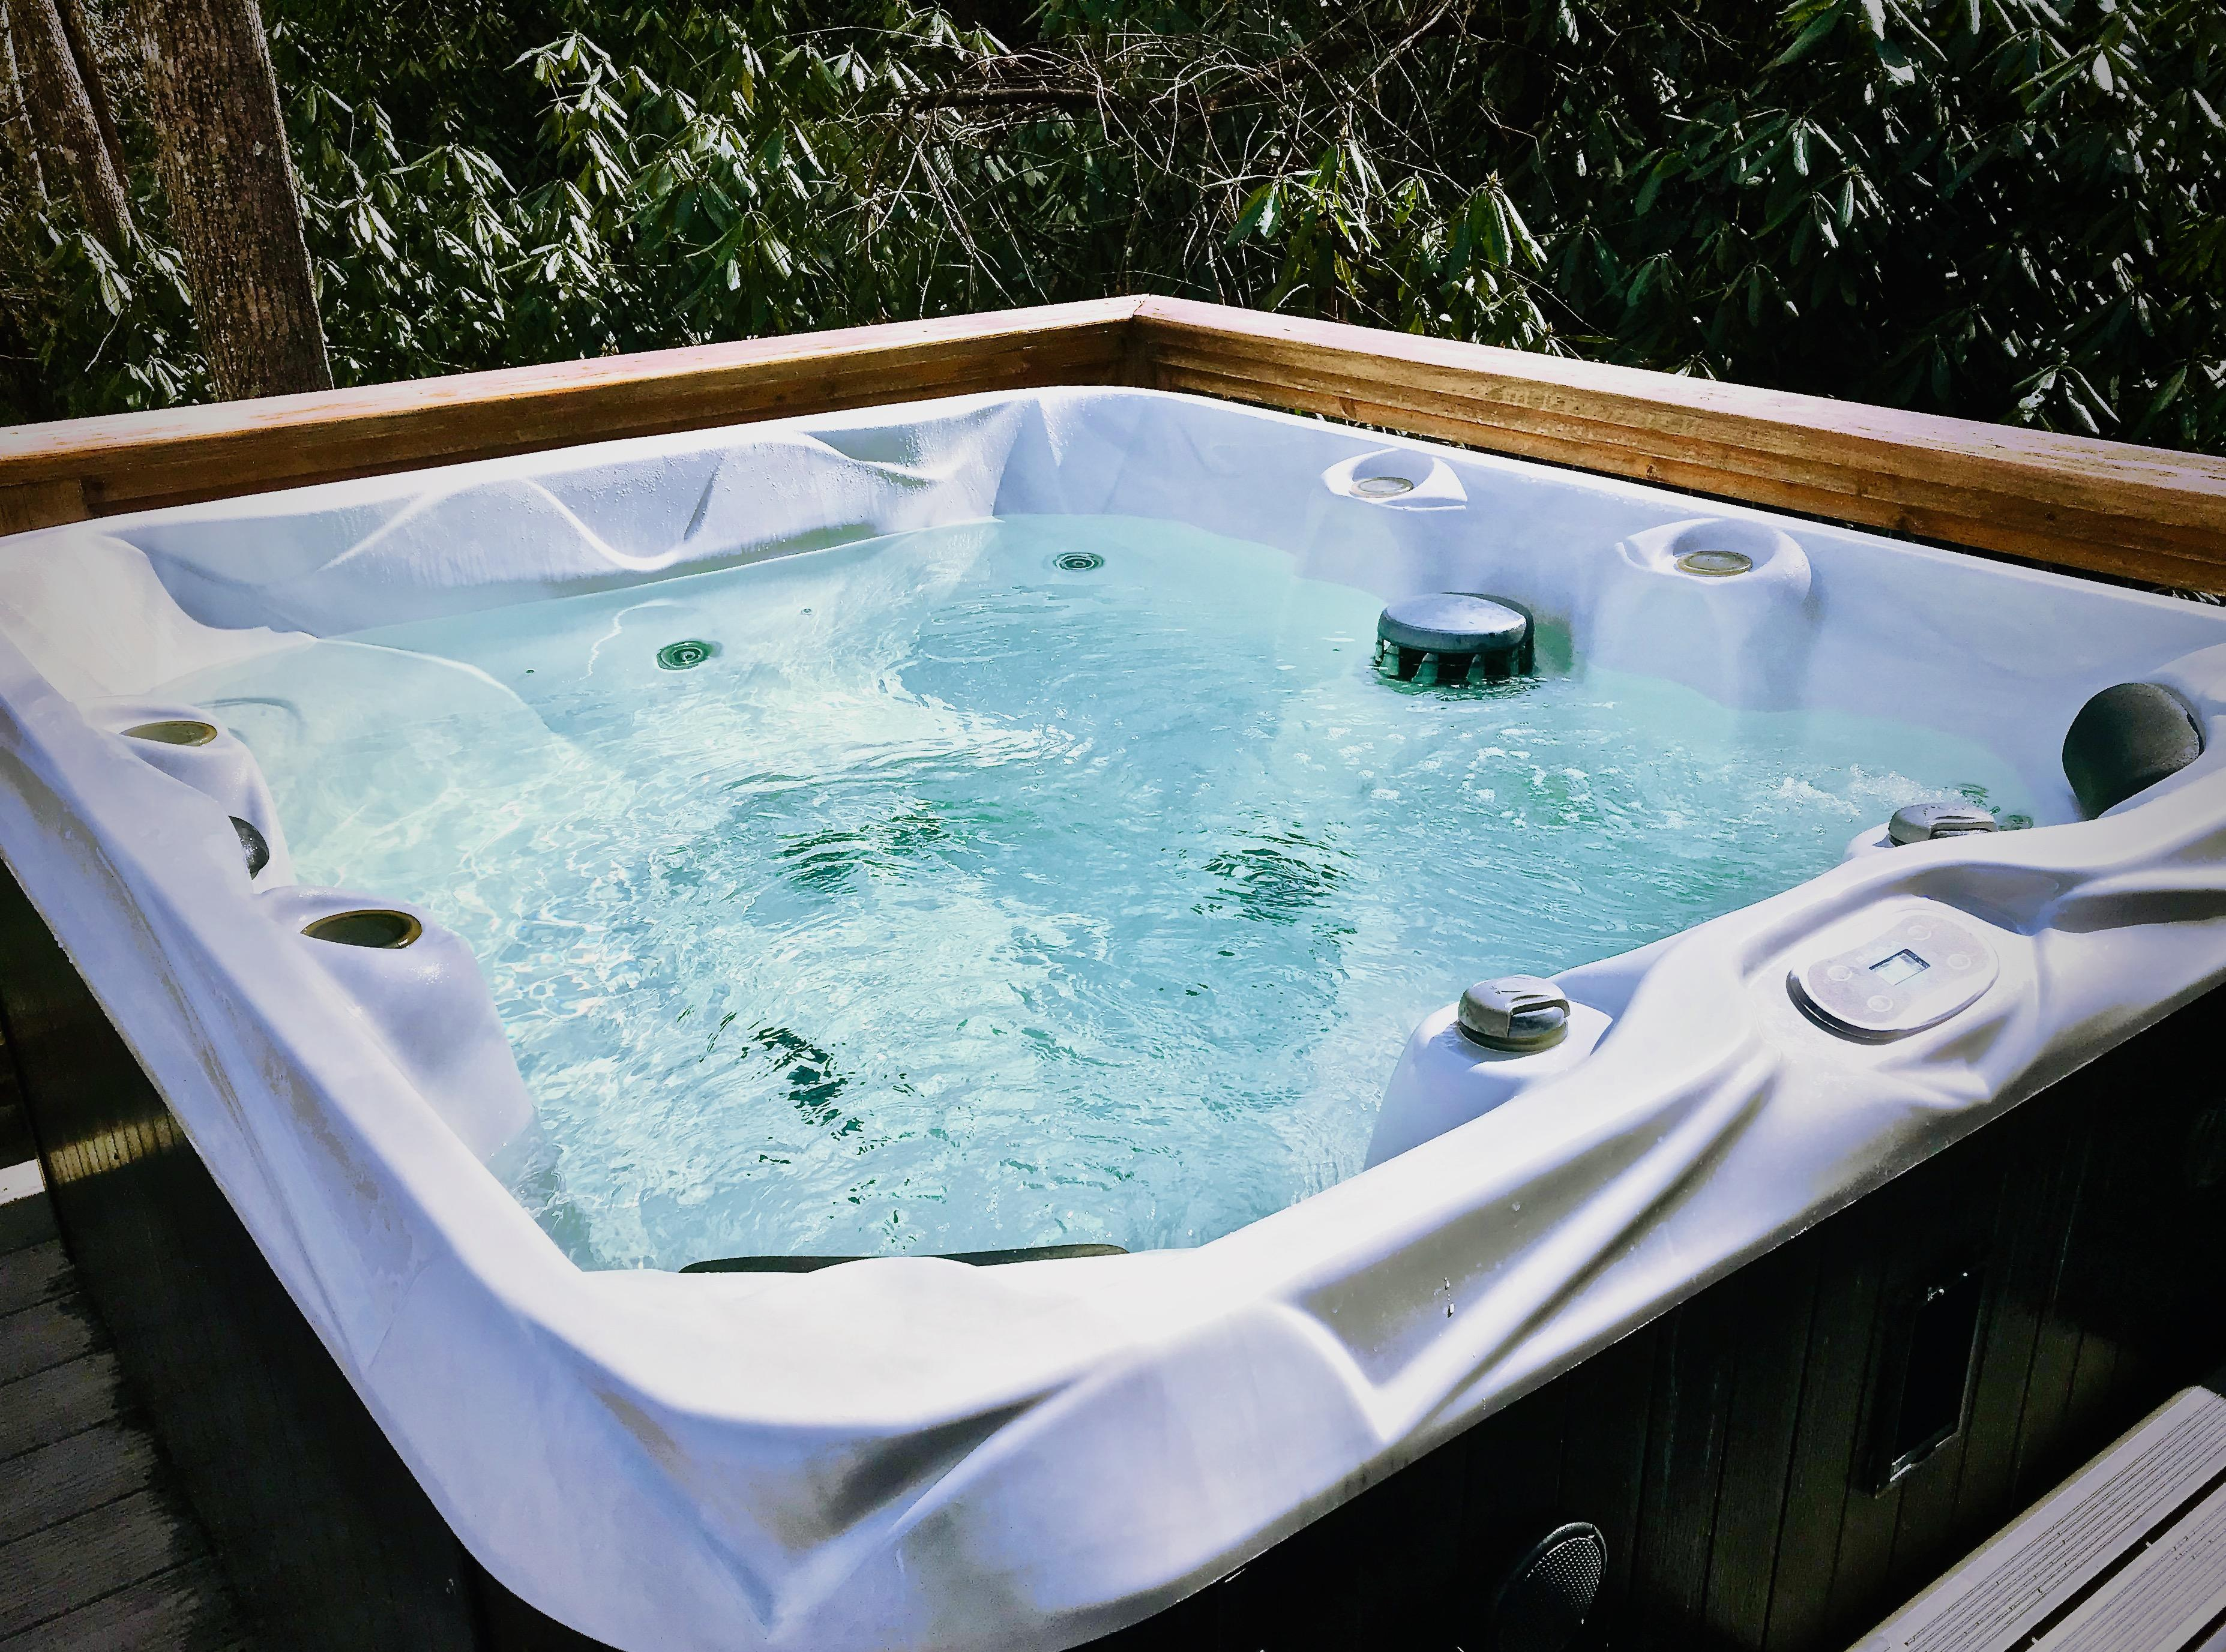 Soothing and Sparkling Hot Tub awaits...